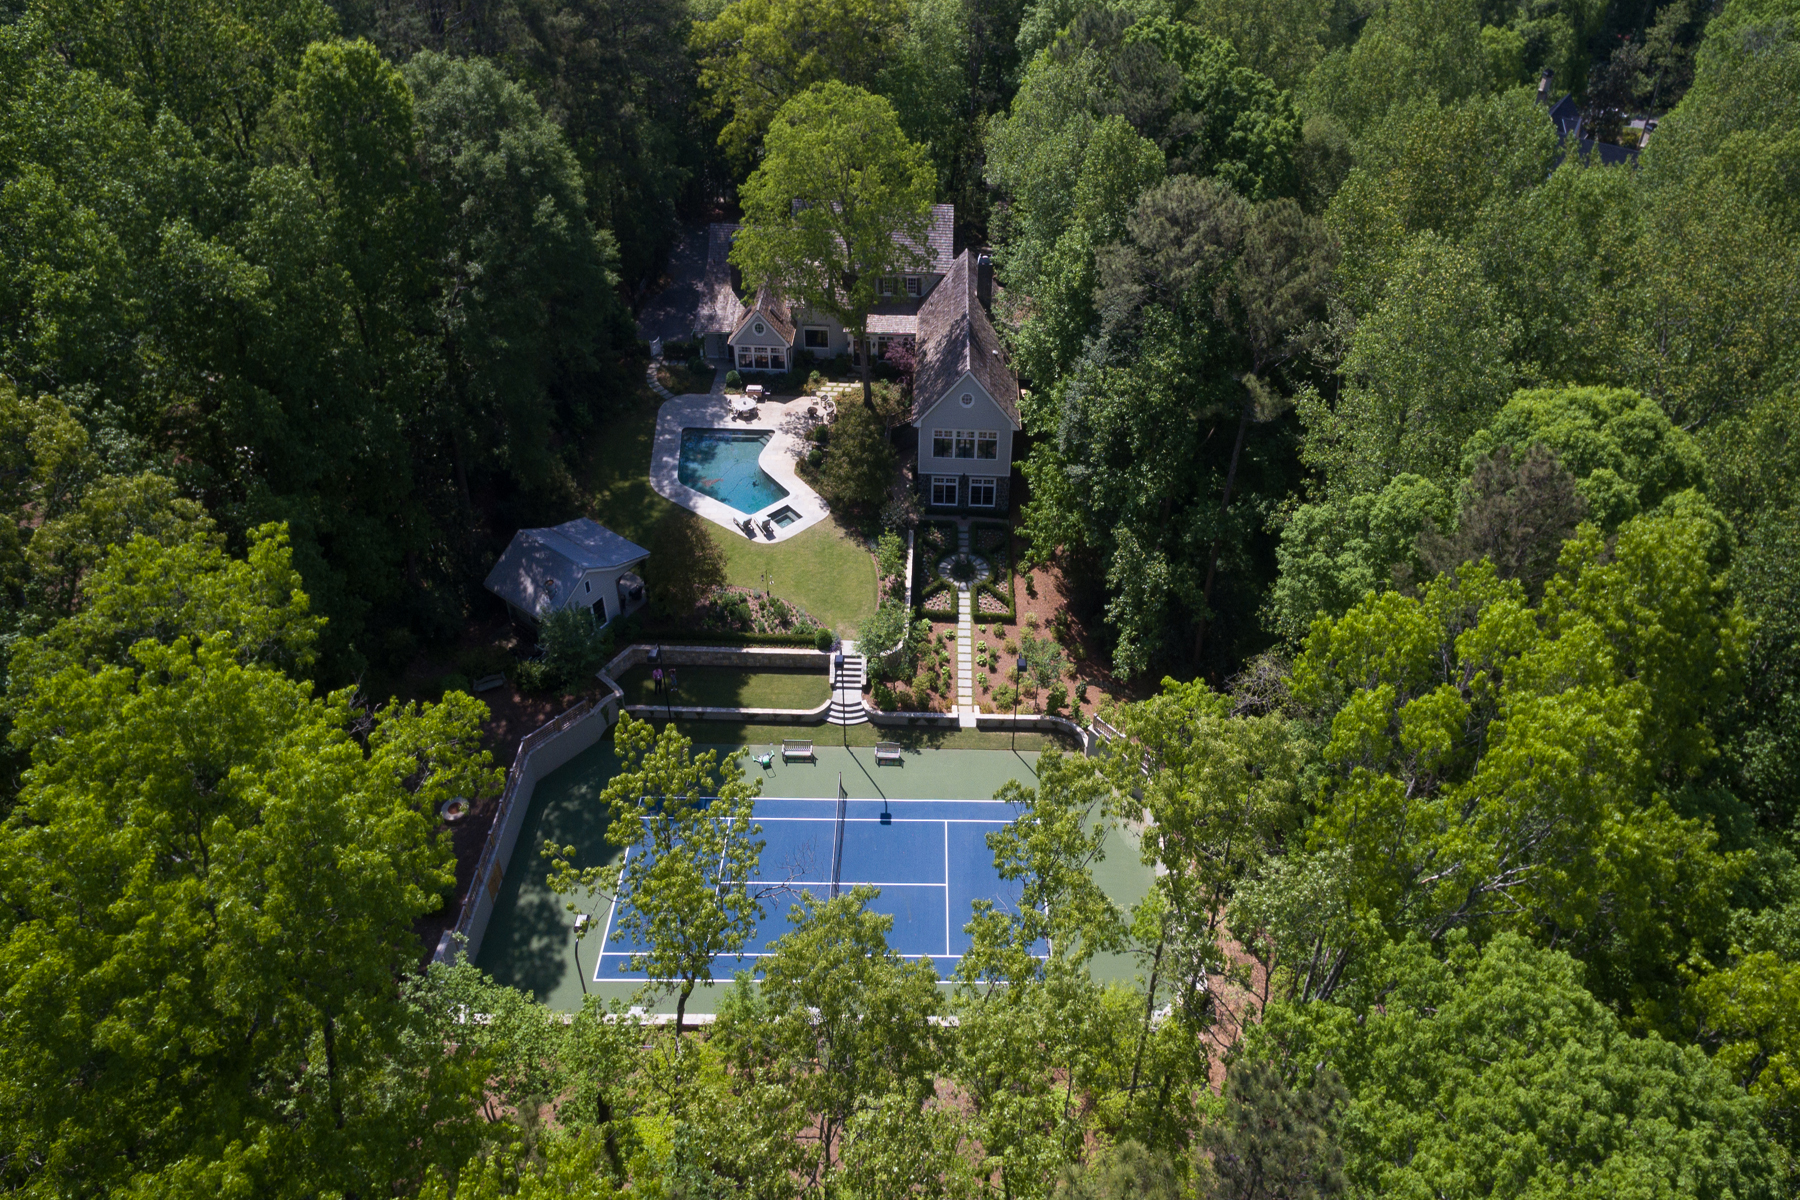 Maison unifamiliale pour l Vente à Amazing 4.86 Acre Estate Property With Lighted Tennis Court And Pool 4000 Conway Valley Road NW Buckhead, Atlanta, Georgia, 30327 États-Unis